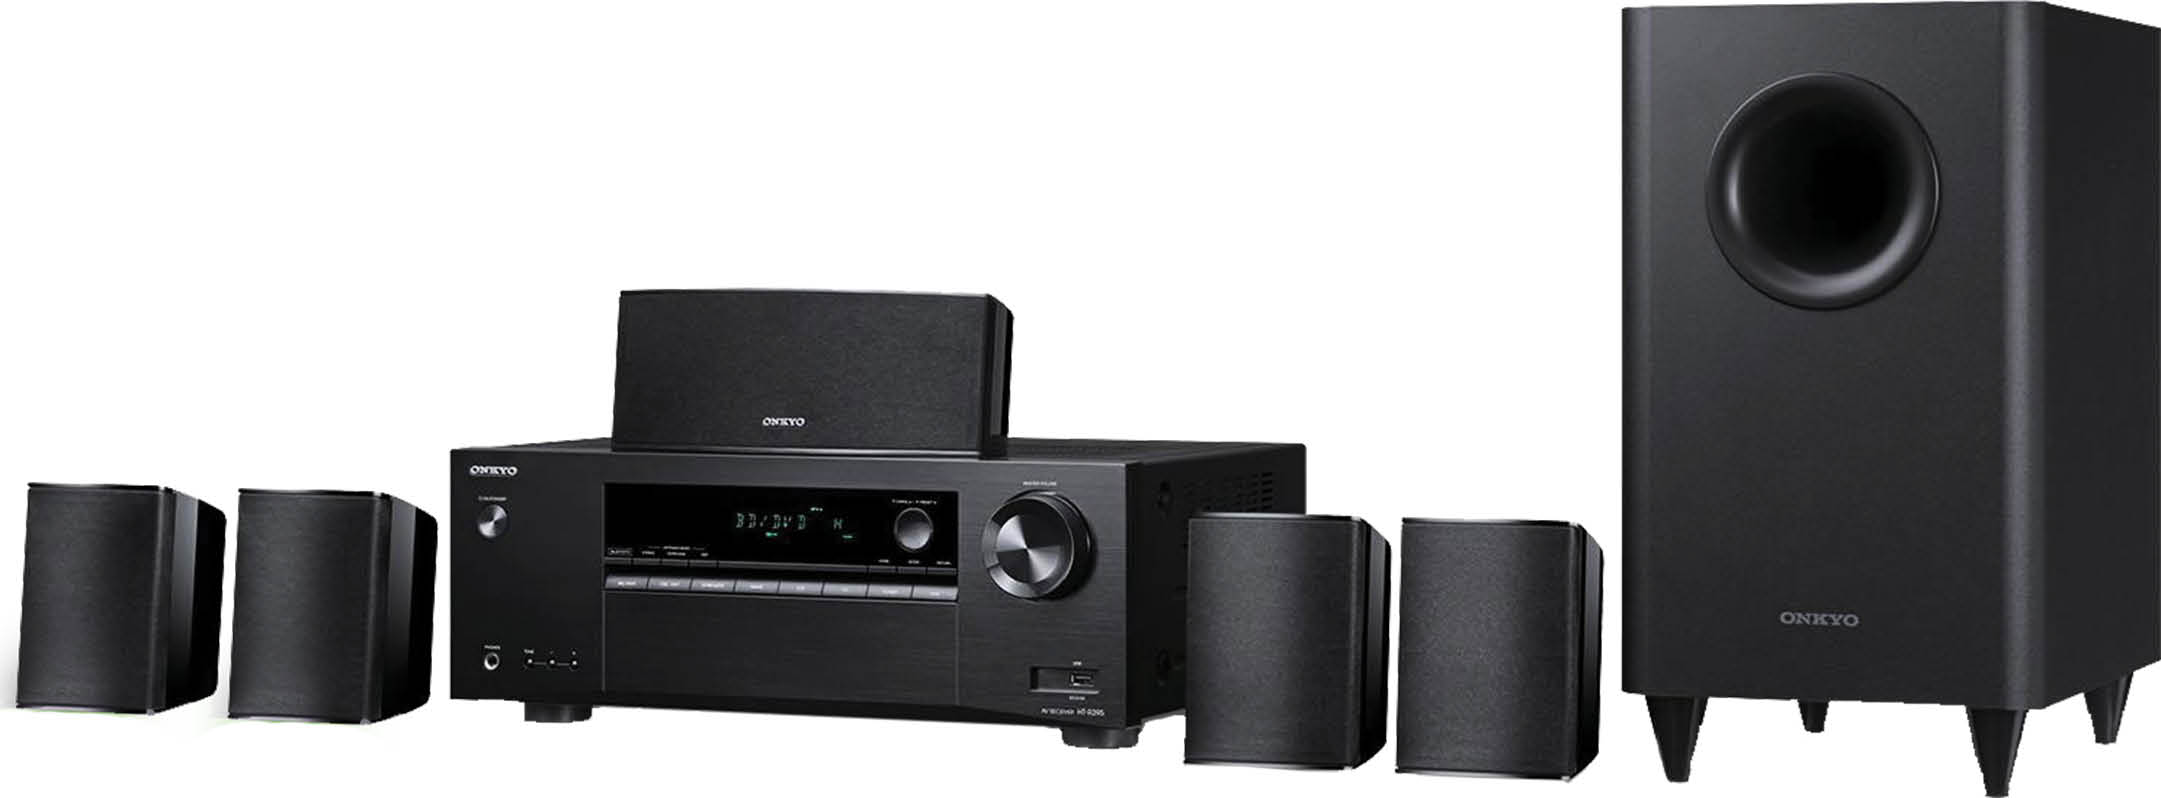 Home theater systems near Schaumburg